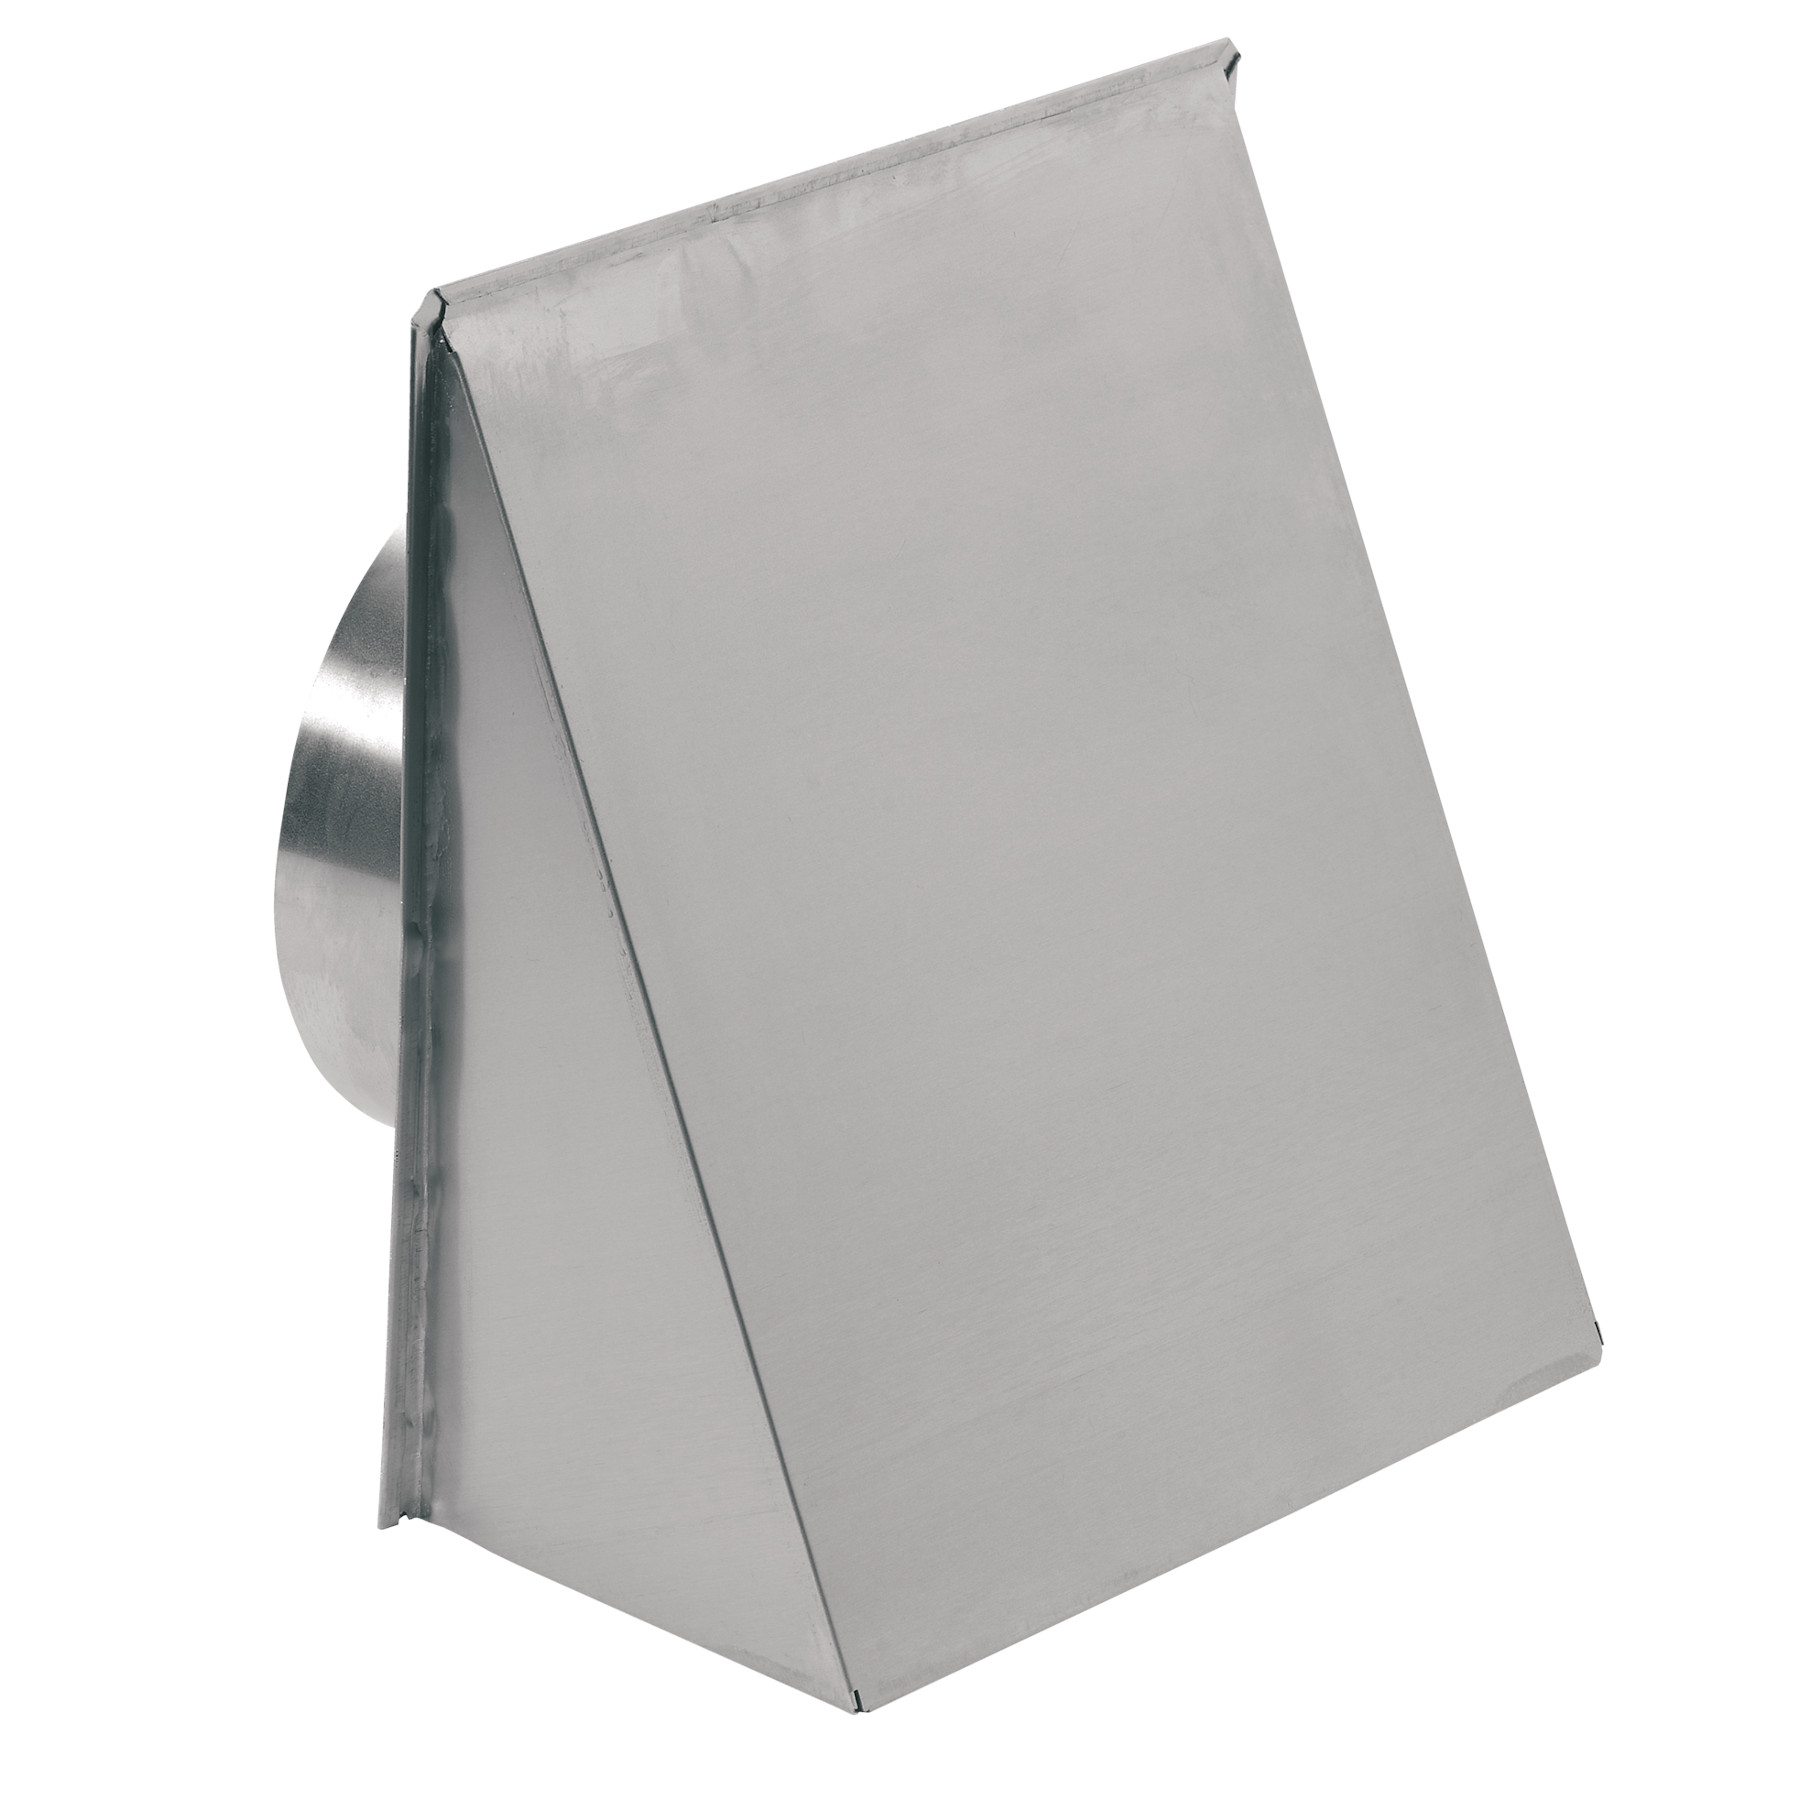 643 wall cap for 8 inch round duct